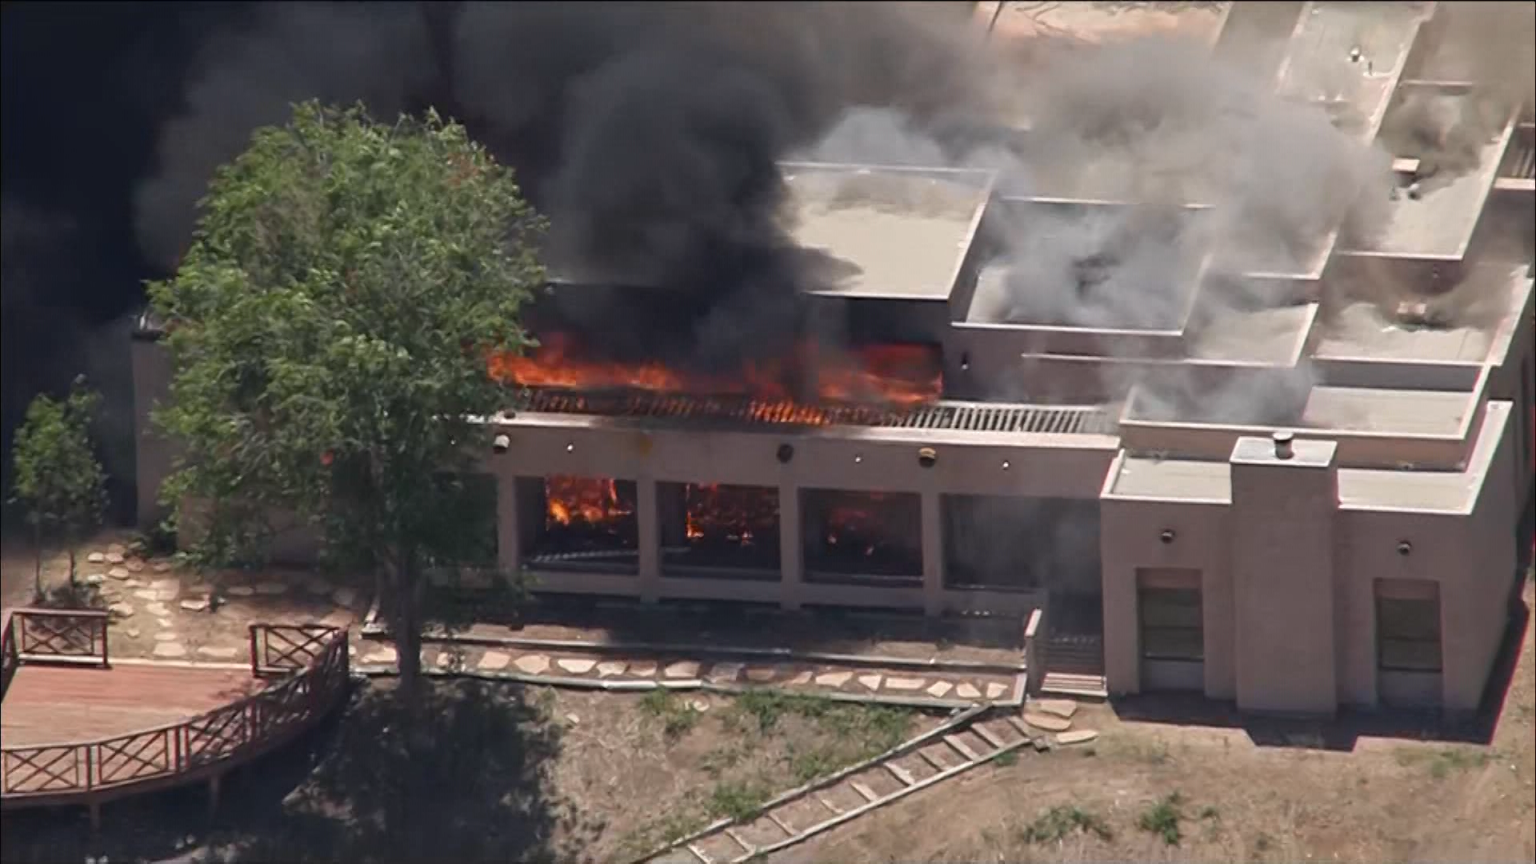 Firefighter Killed In Shooting At LACo Fire Station In Agua Dulce